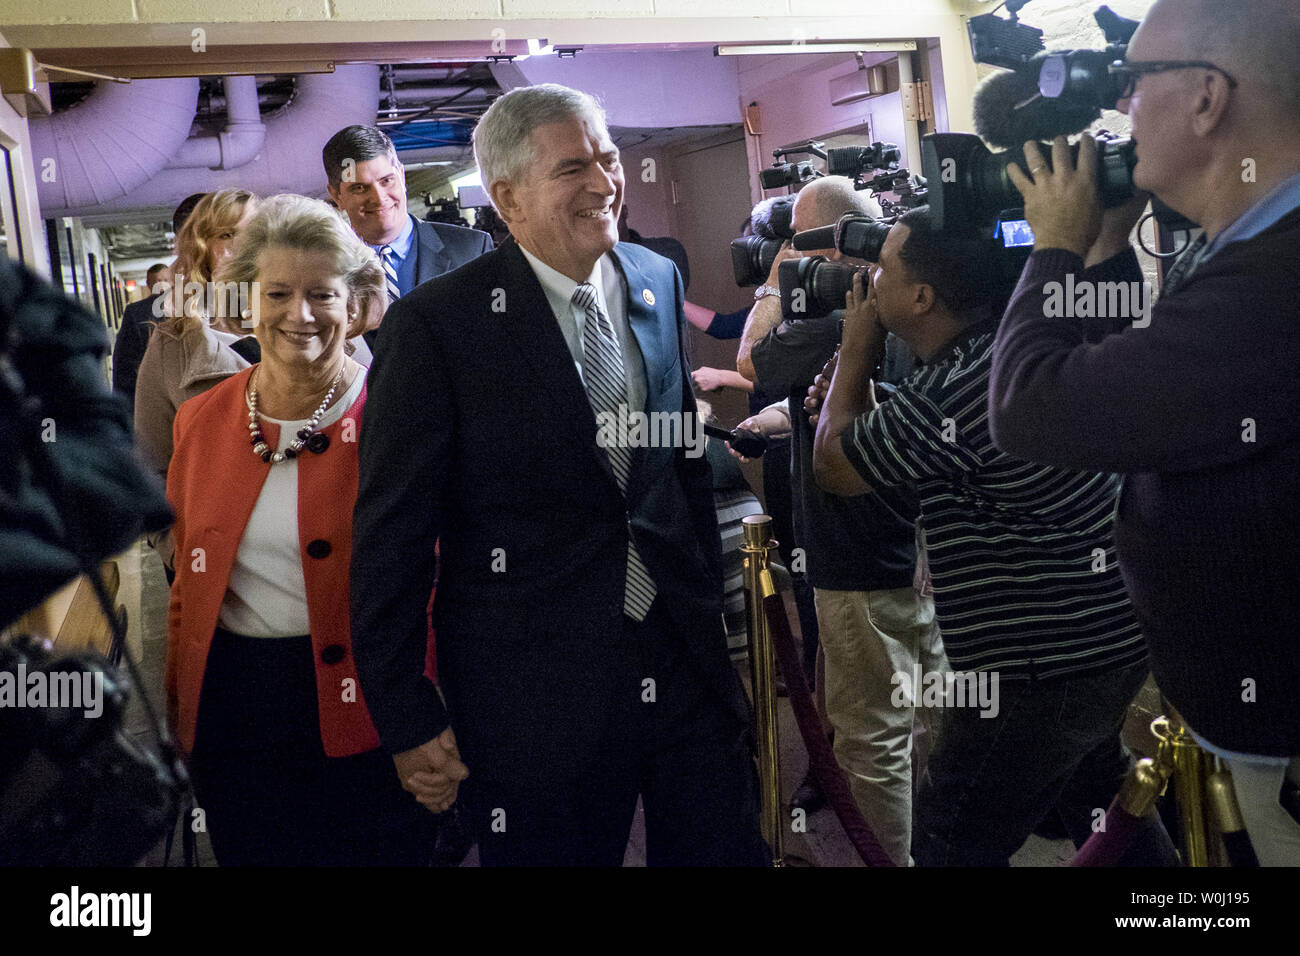 Rep. Daniel Webster (R-FL) arrives with his wife, Sandy, for a GOP Conference Candidates forum for the election of the new Speaker of the House on October 28, 2015 in Washington, D.C.  Webster is running against Rep. Paul Ryan (R-WI) as the Republicans are selecting a candidate for Speaker that will replace John Boehner (R-OH) when he retires on October 30. Photo by Pete Marovich/UPI - Stock Image